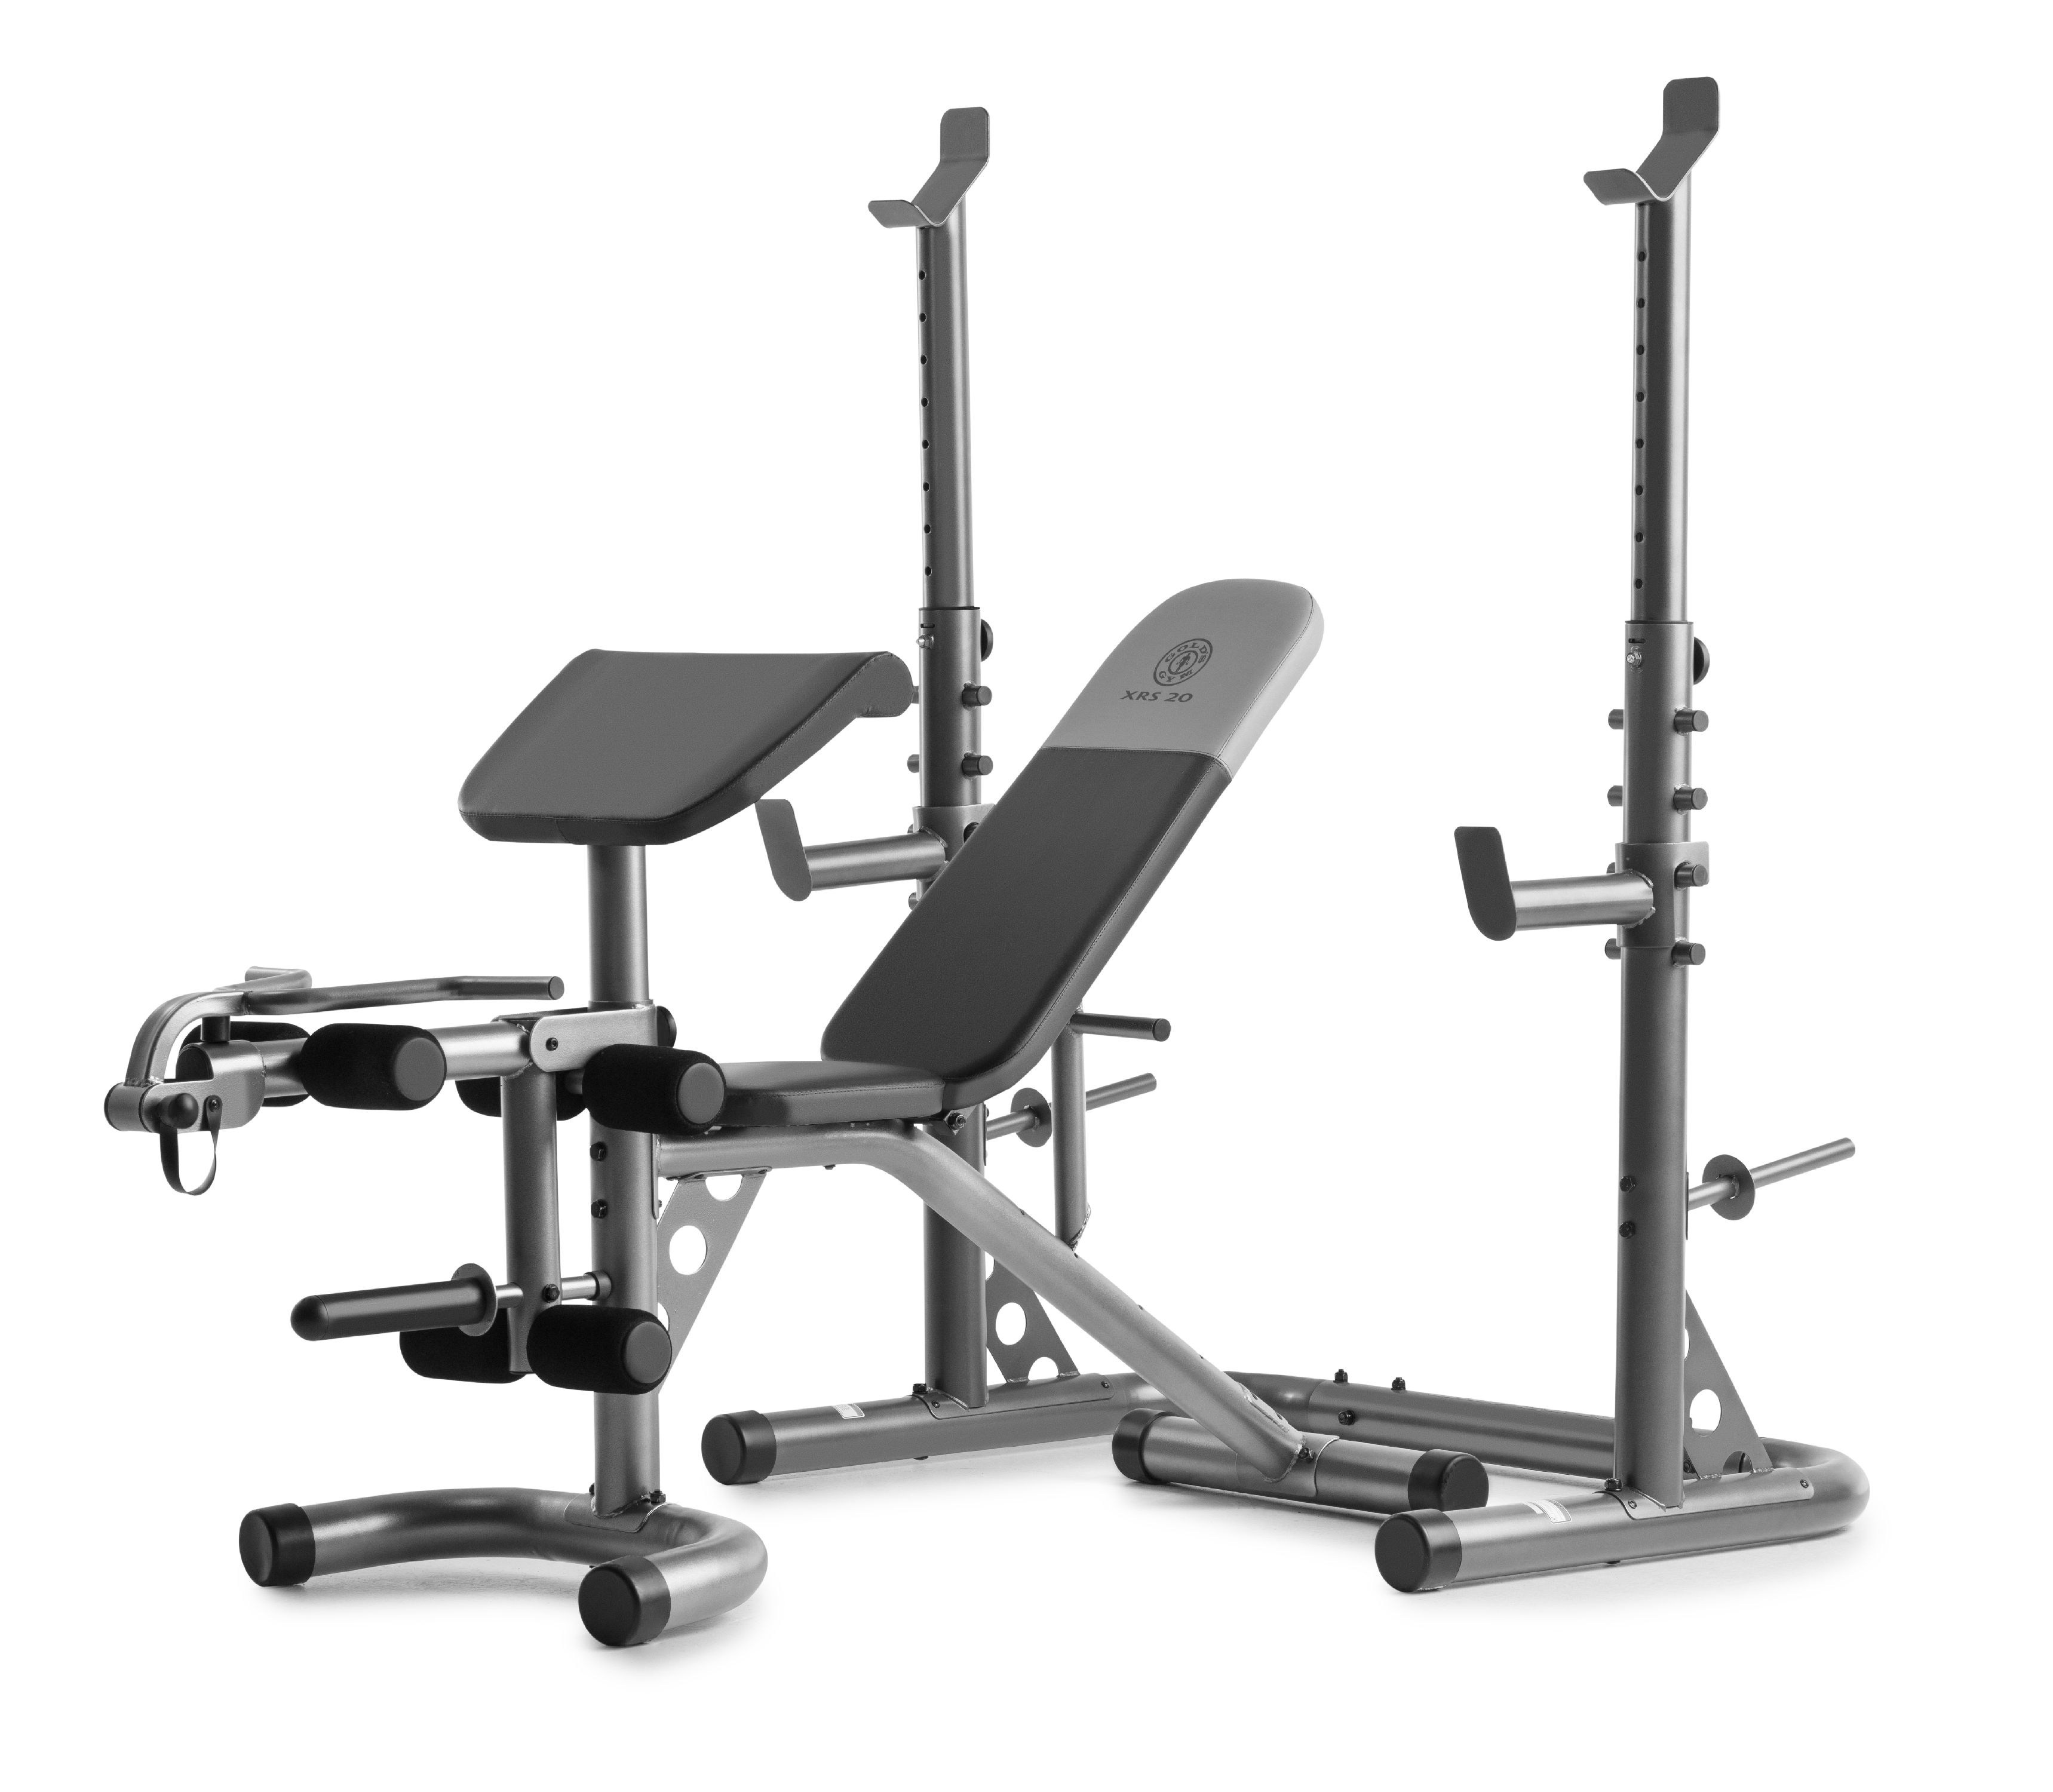 Weider Cast Iron Olympic Hammertone Weight Set 210 Lb And